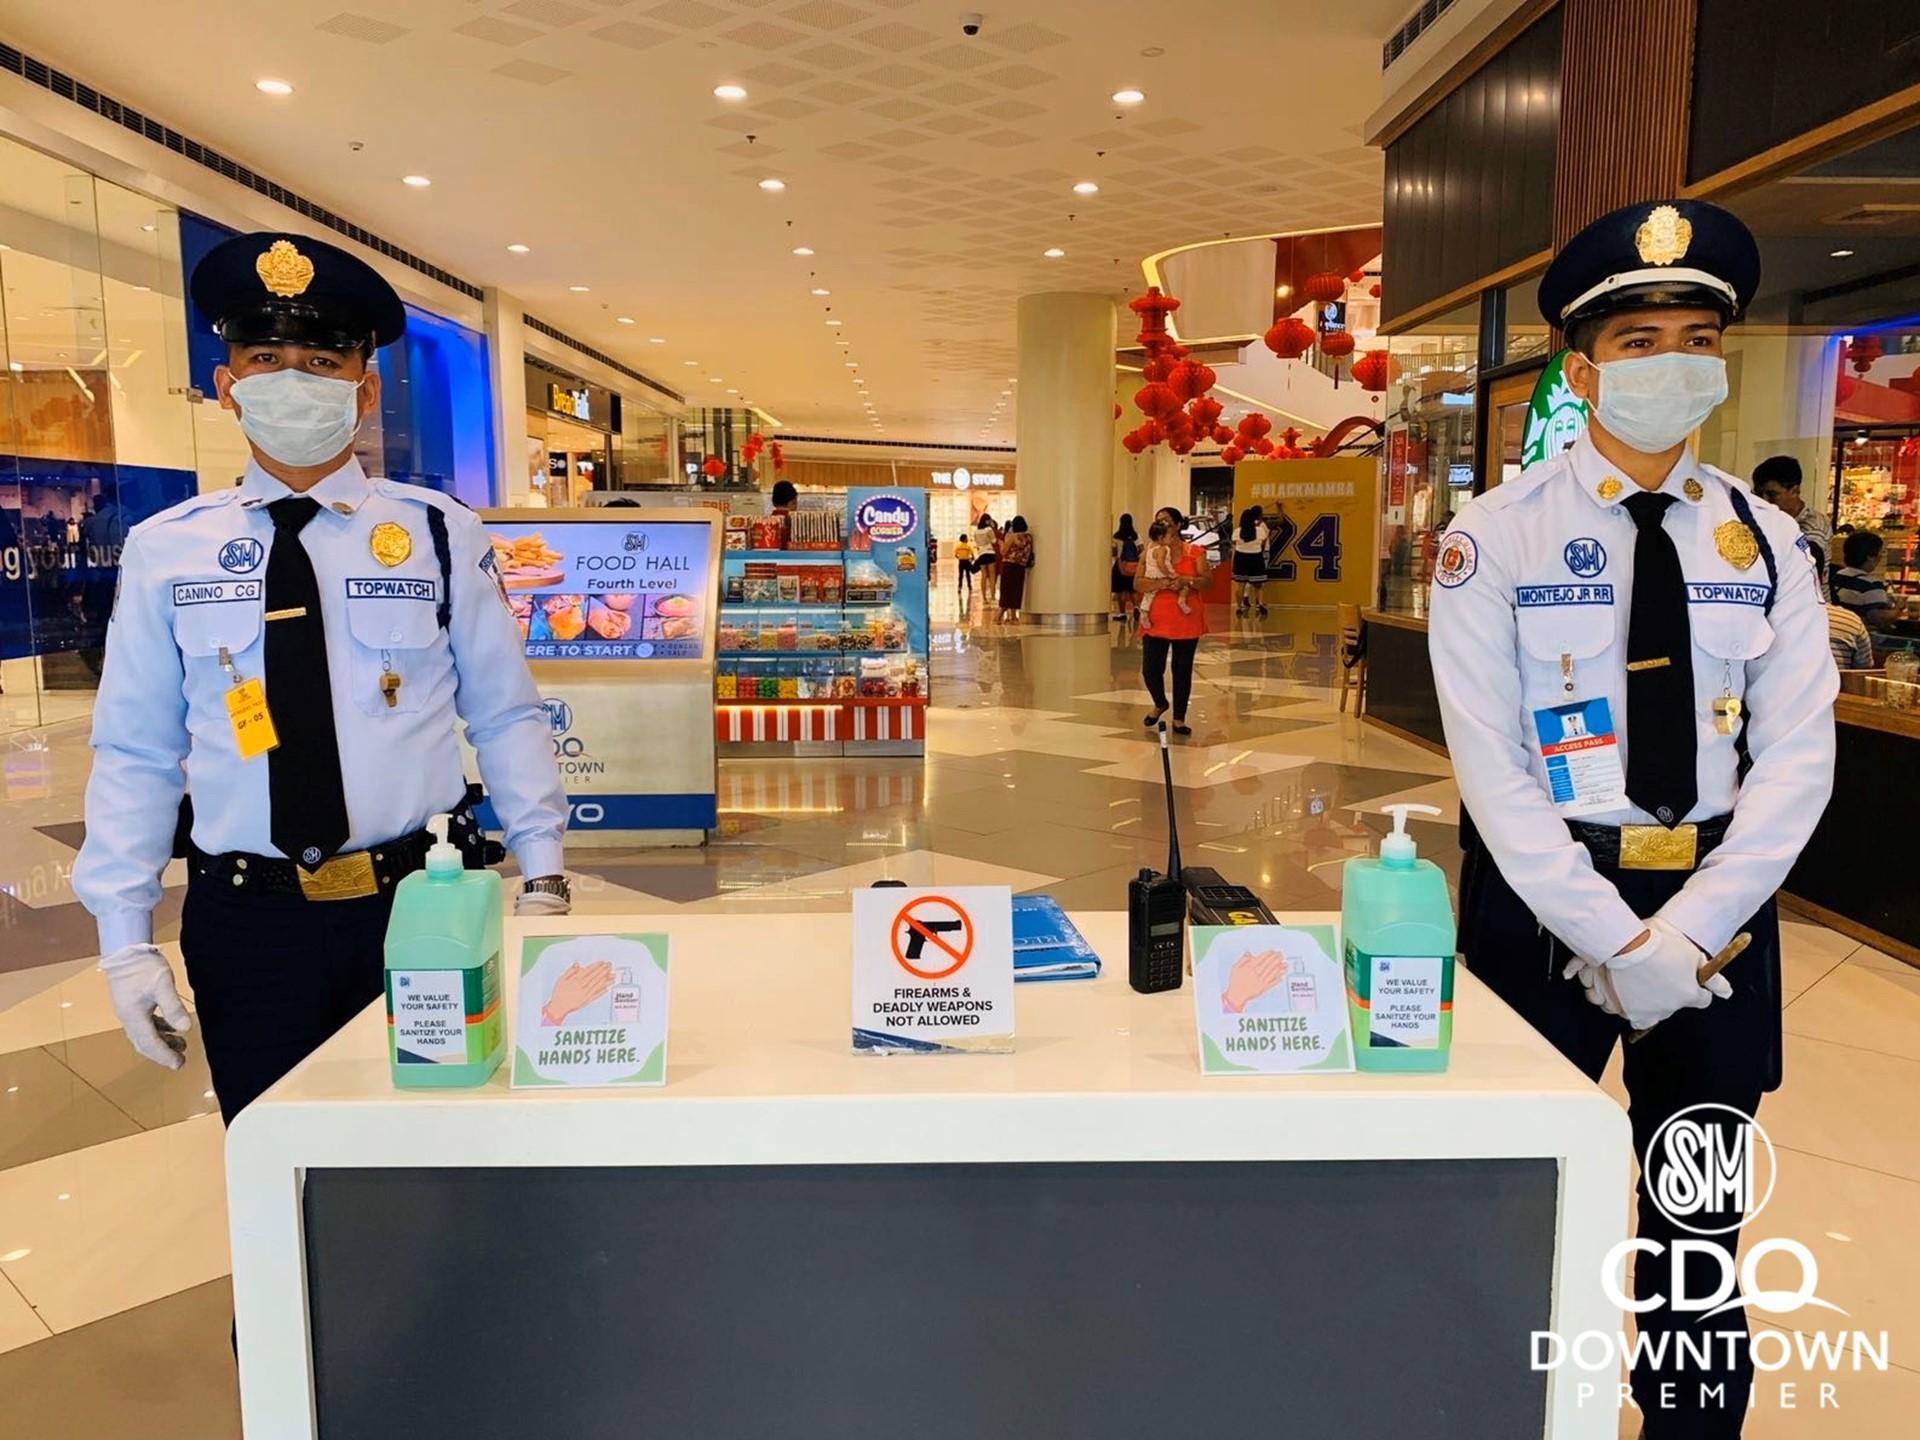 SAFETY MEASURE. A shopping mall in Cagayan de Oro welcomes mall goers with hand sanitizer and rubbing alcohol to use as a precautionary measure against the 2019 novel coronavirus. Photo from SM CDO Downtown Premier